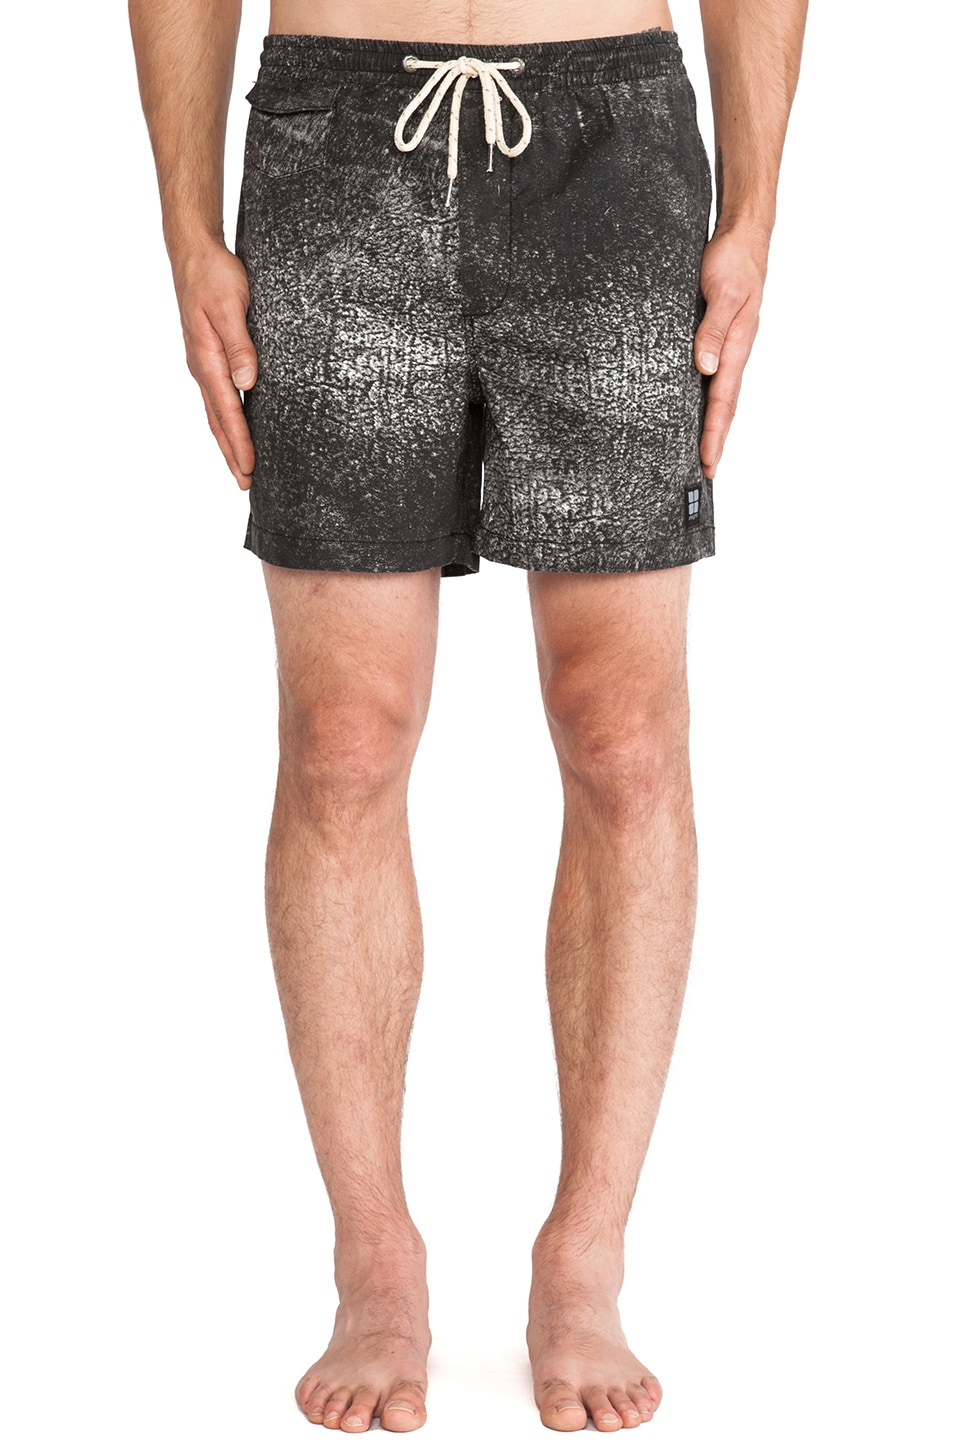 Insight Shark Beach Short in Shark black